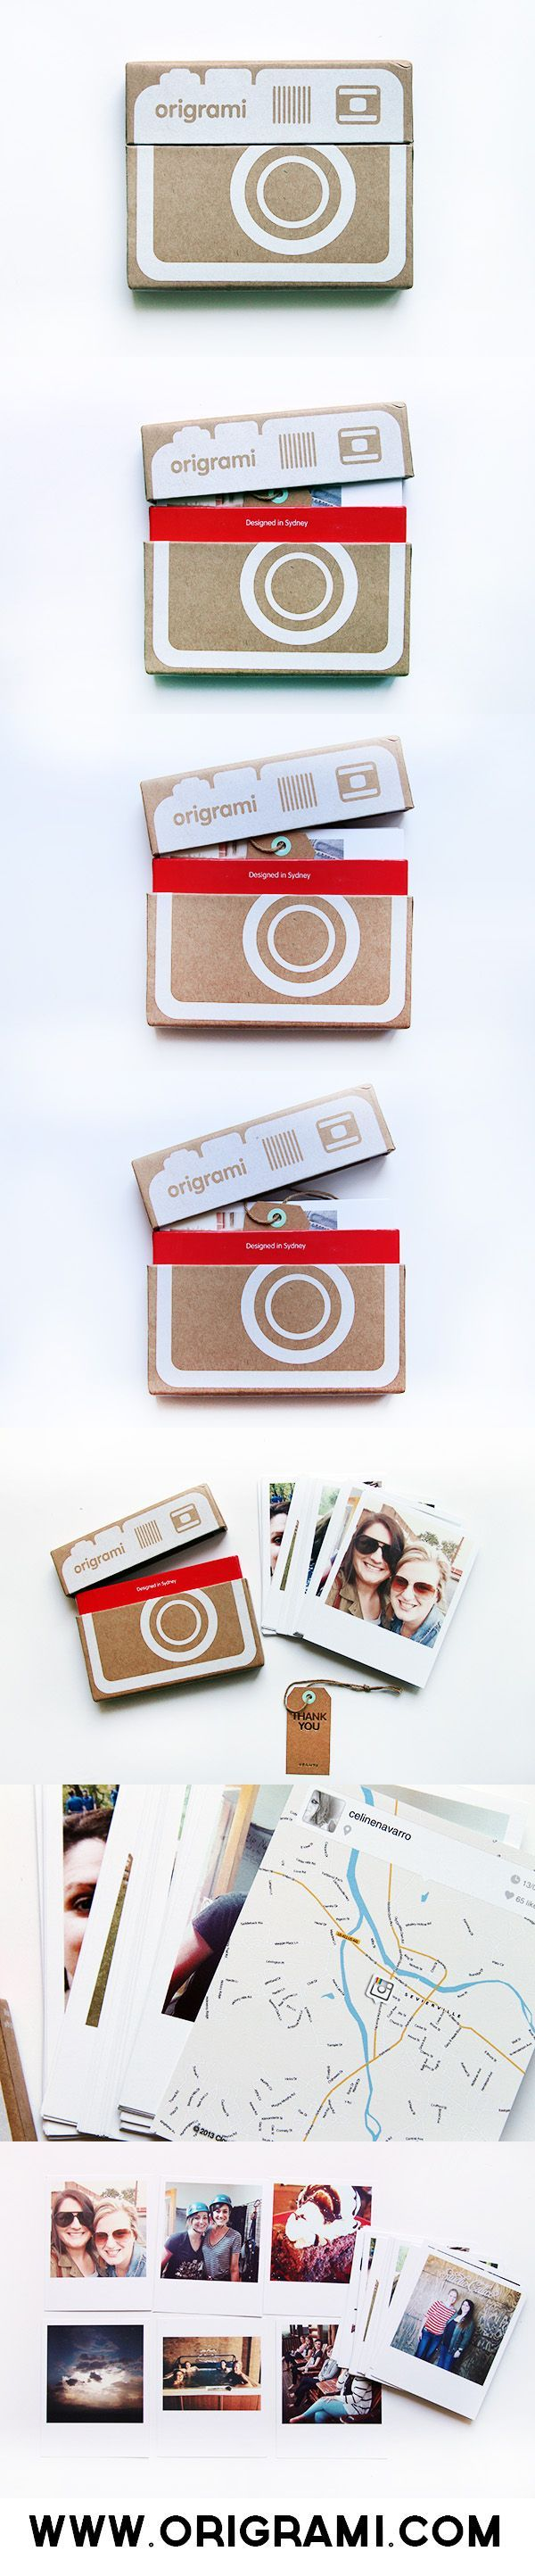 photographs - capturing big moments. lovely packaging idea, something to consider to promote the exhibition using the element of social media and technology